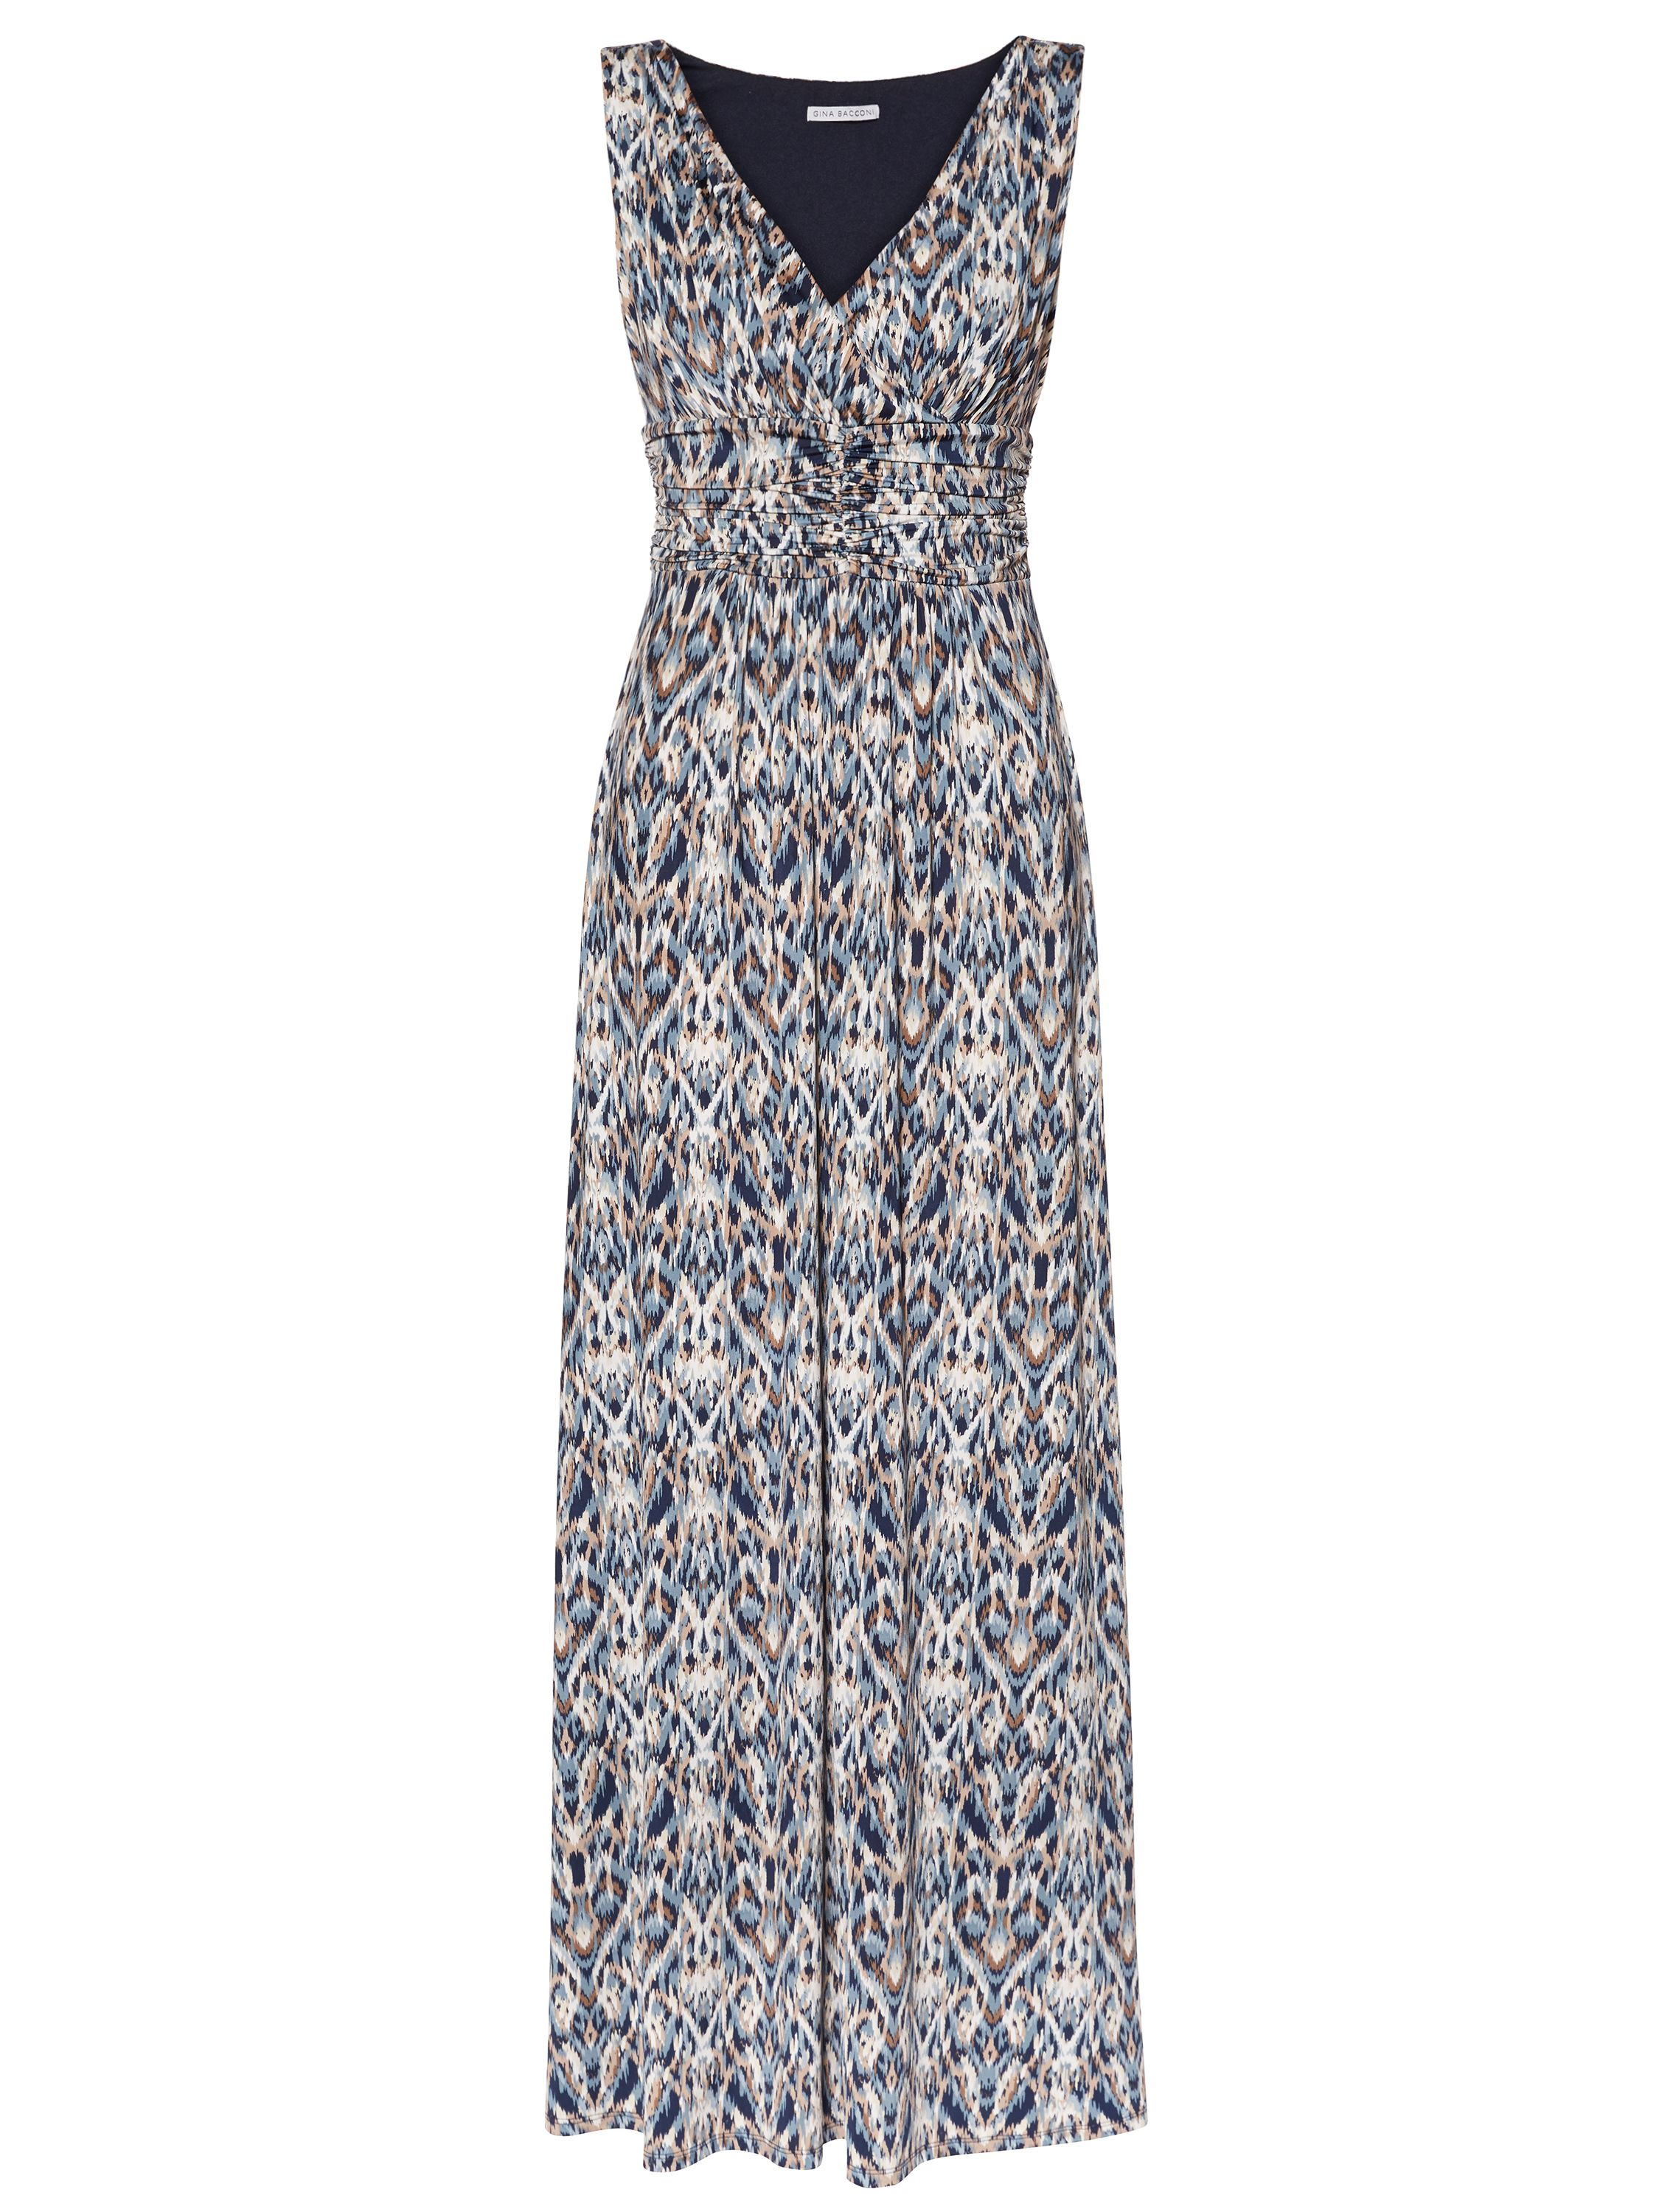 Gina Bacconi Blue Multi Print Jersey Maxi Dress, Multi-Coloured